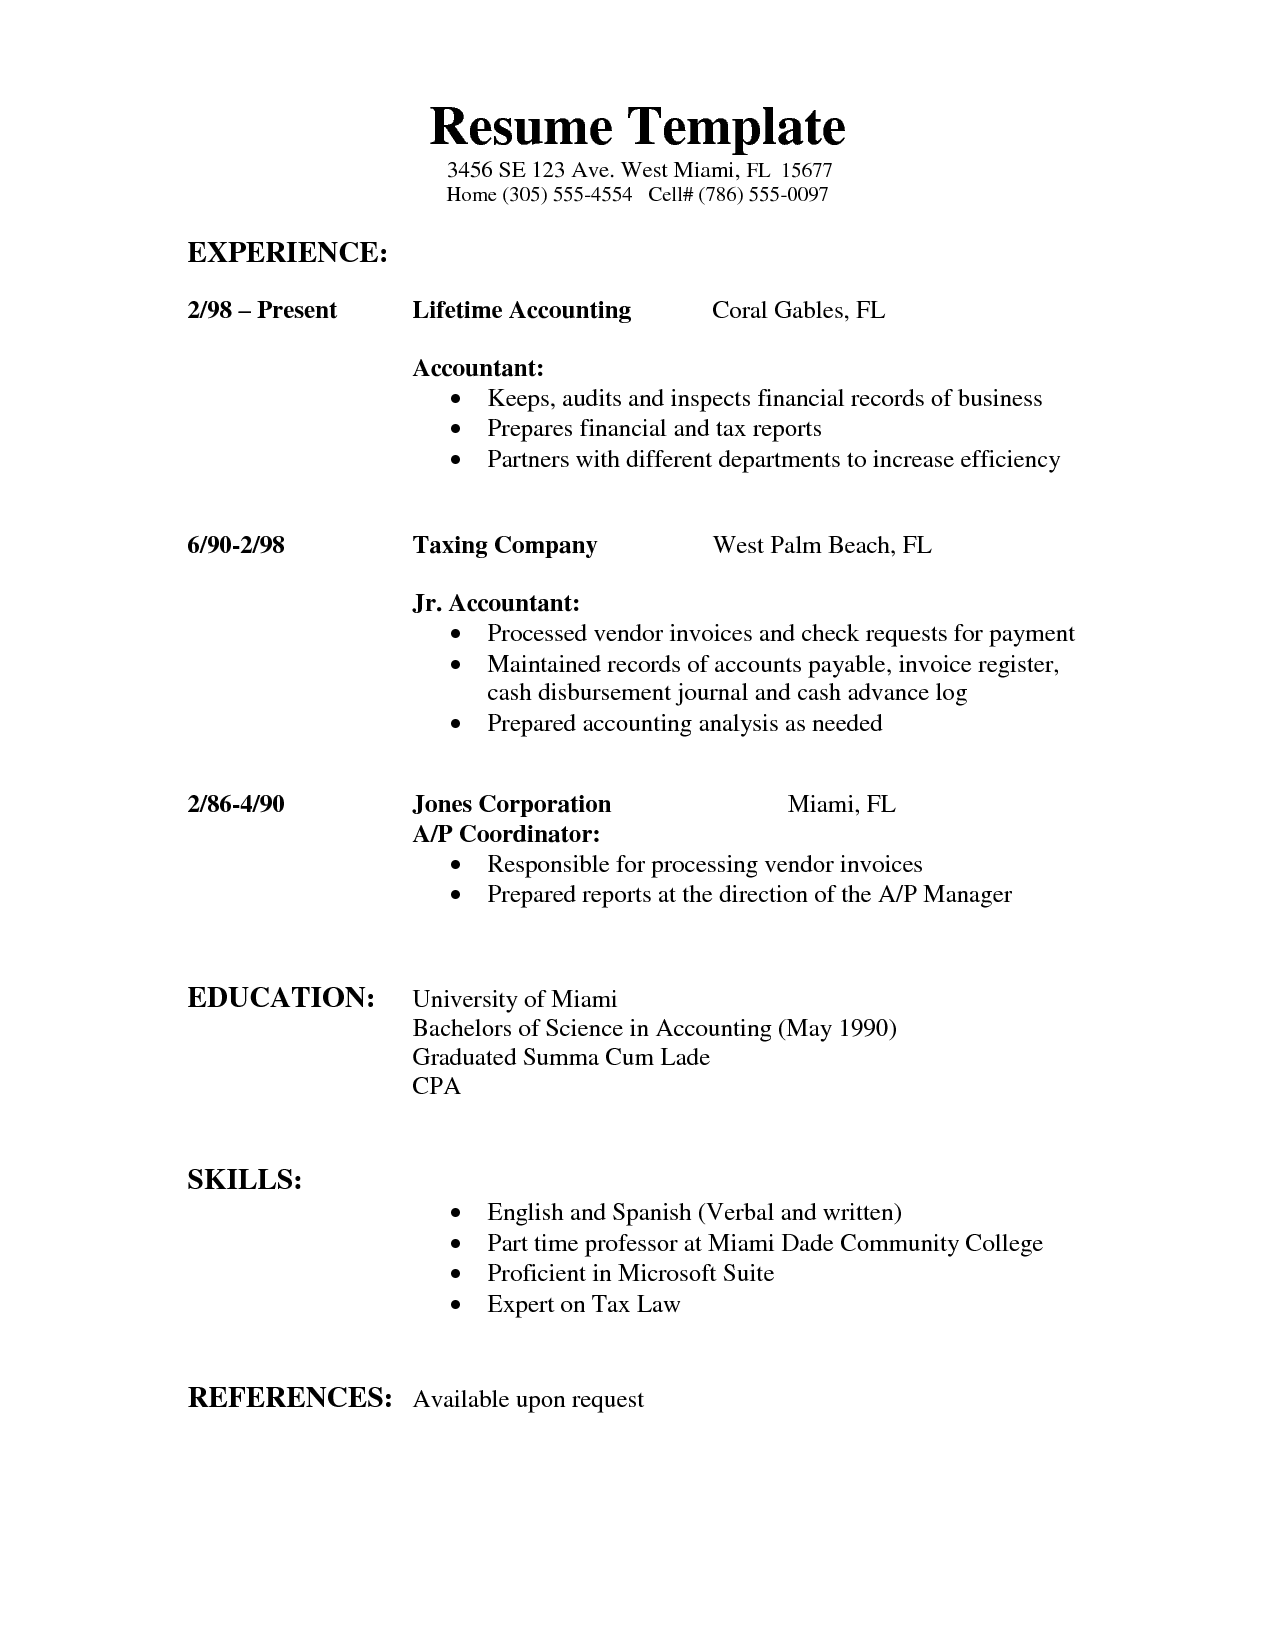 resumes resume examples projects to try example resumes resume examples